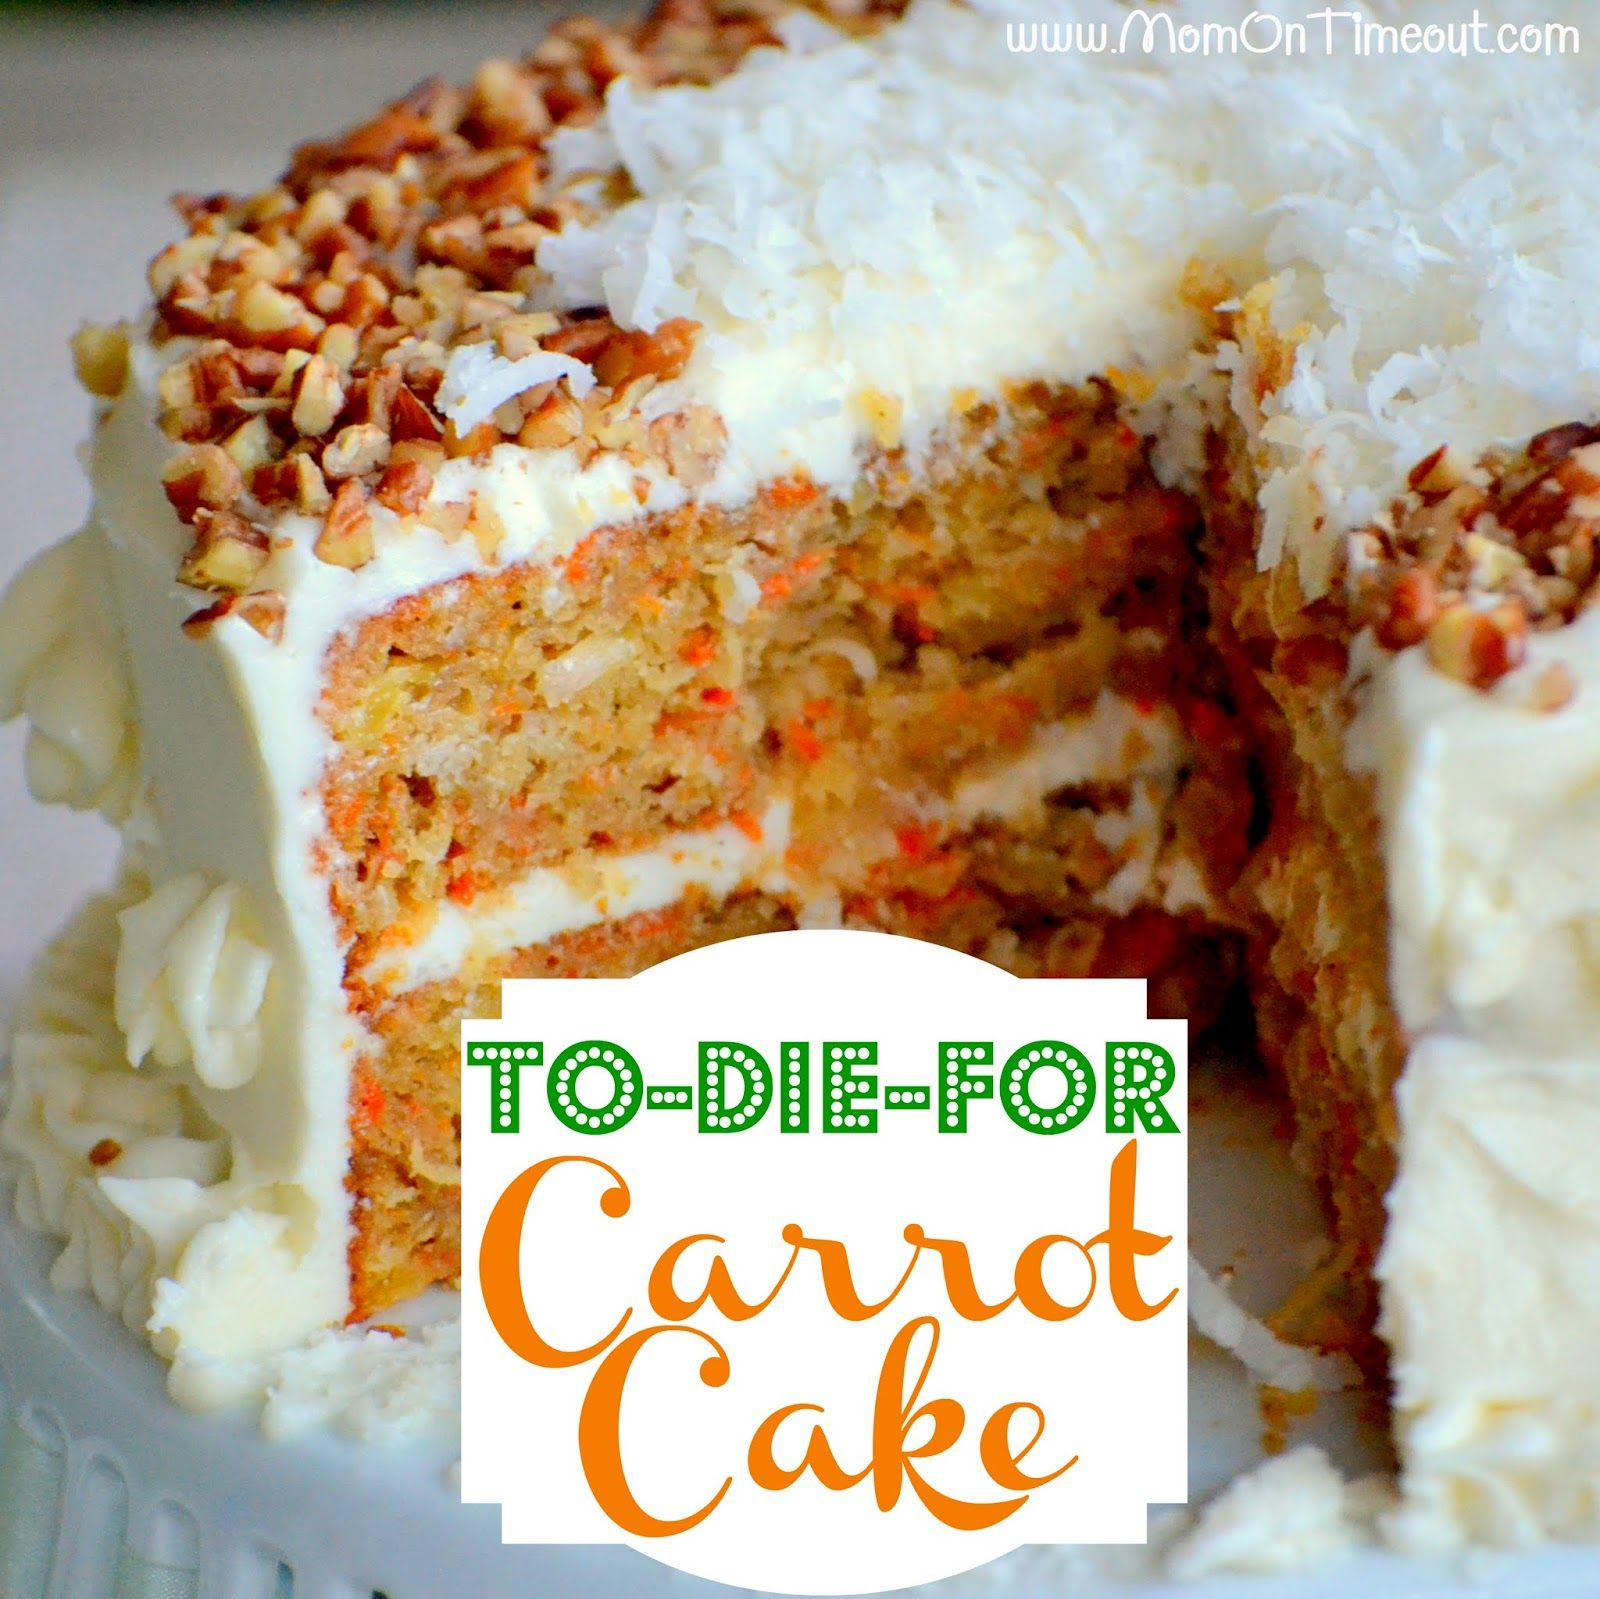 30 Great Cake Recipes With Images Best Carrot Cake Dessert